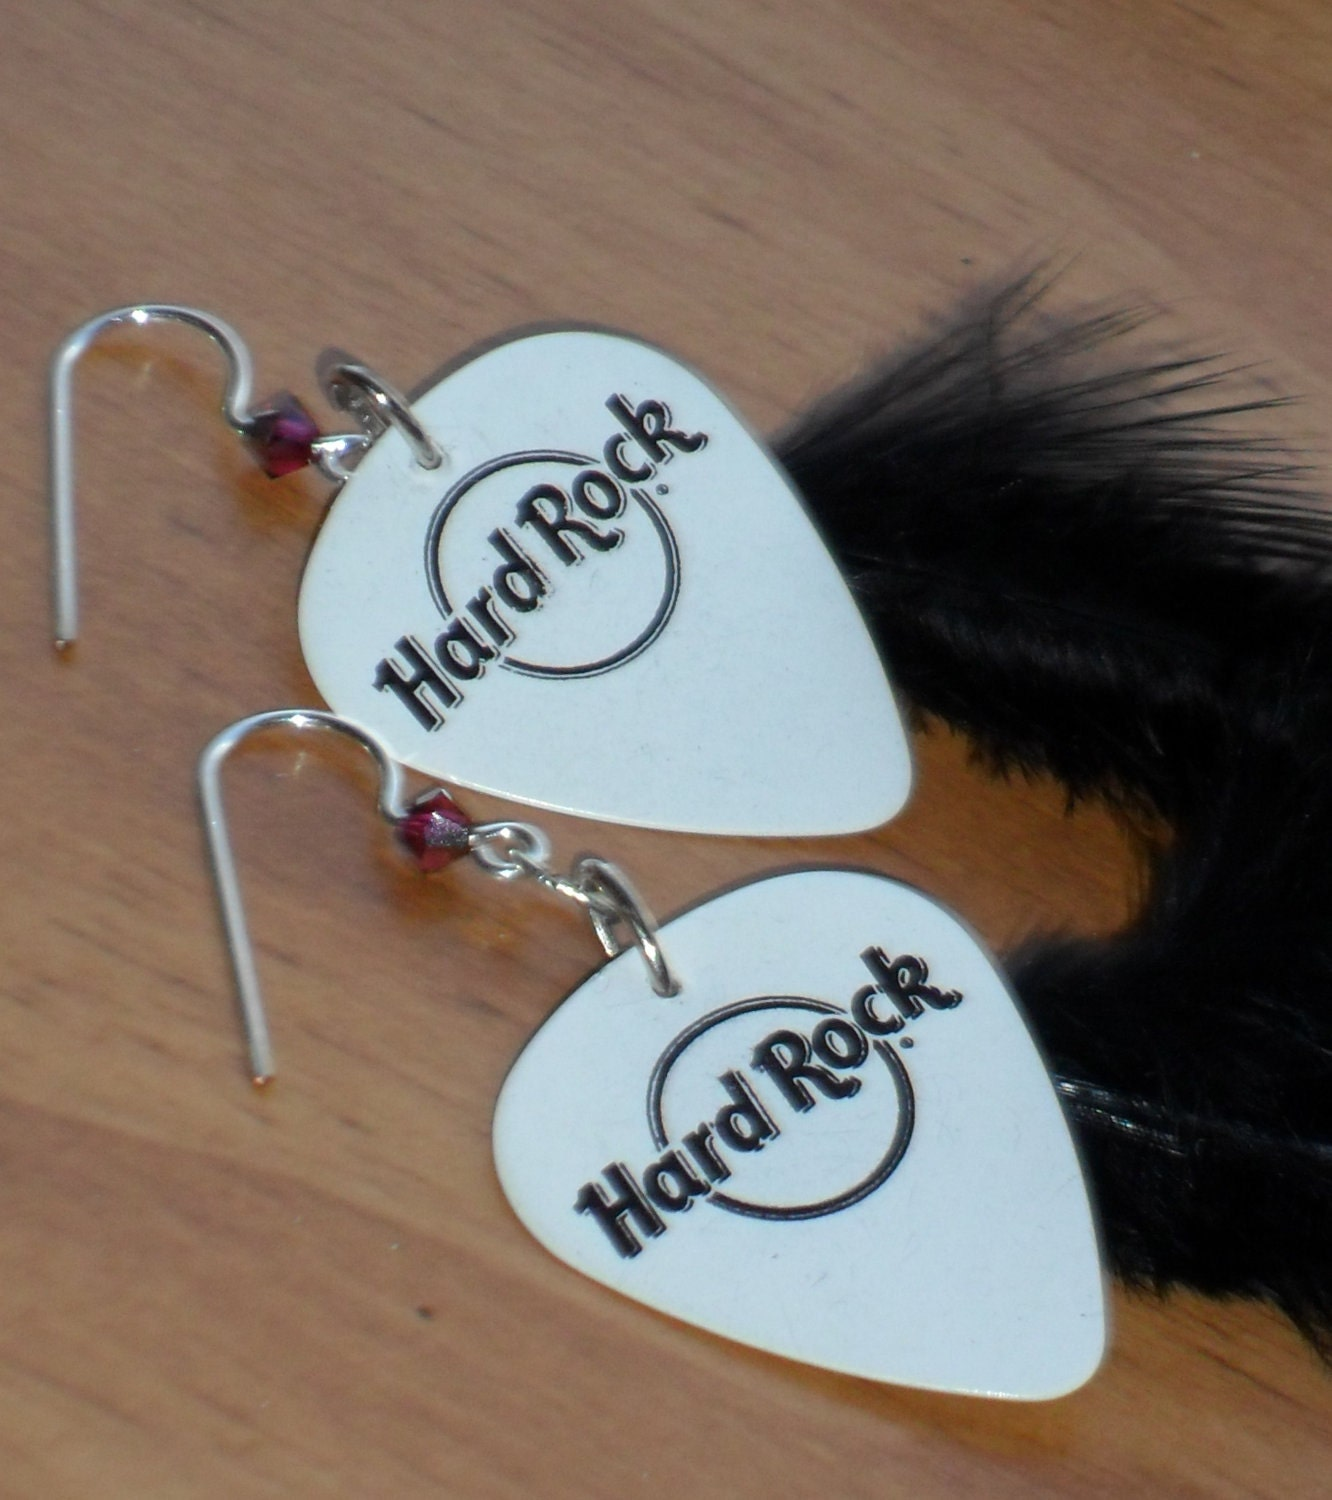 Wings and Things Guitar Picks and Feathers Earrings